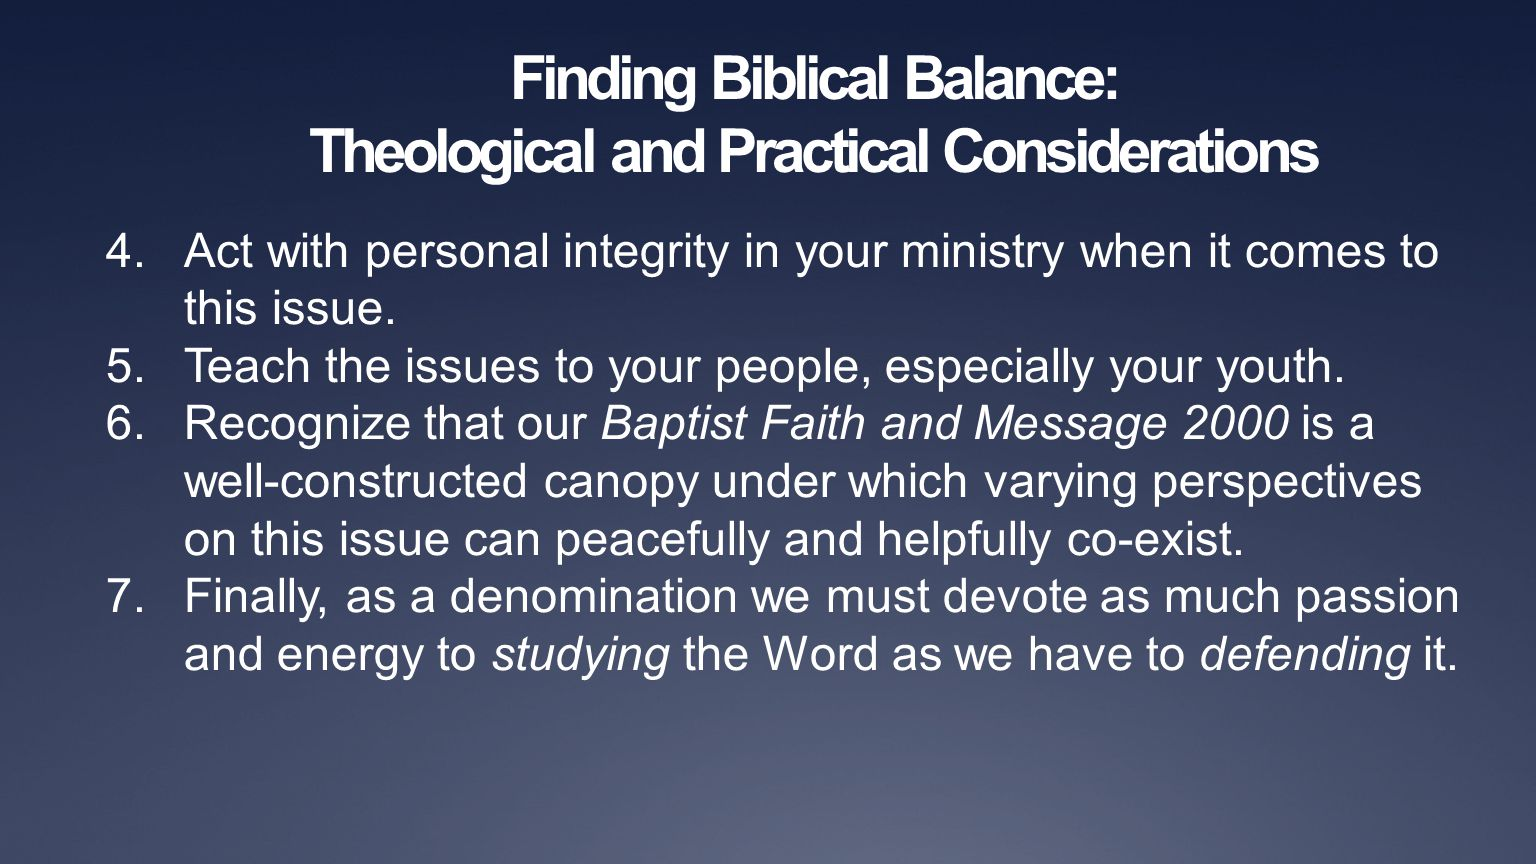 Finding Biblical Balance: Theological and Practical Considerations 4.Act with personal integrity in your ministry when it comes to this issue. 5.Teach